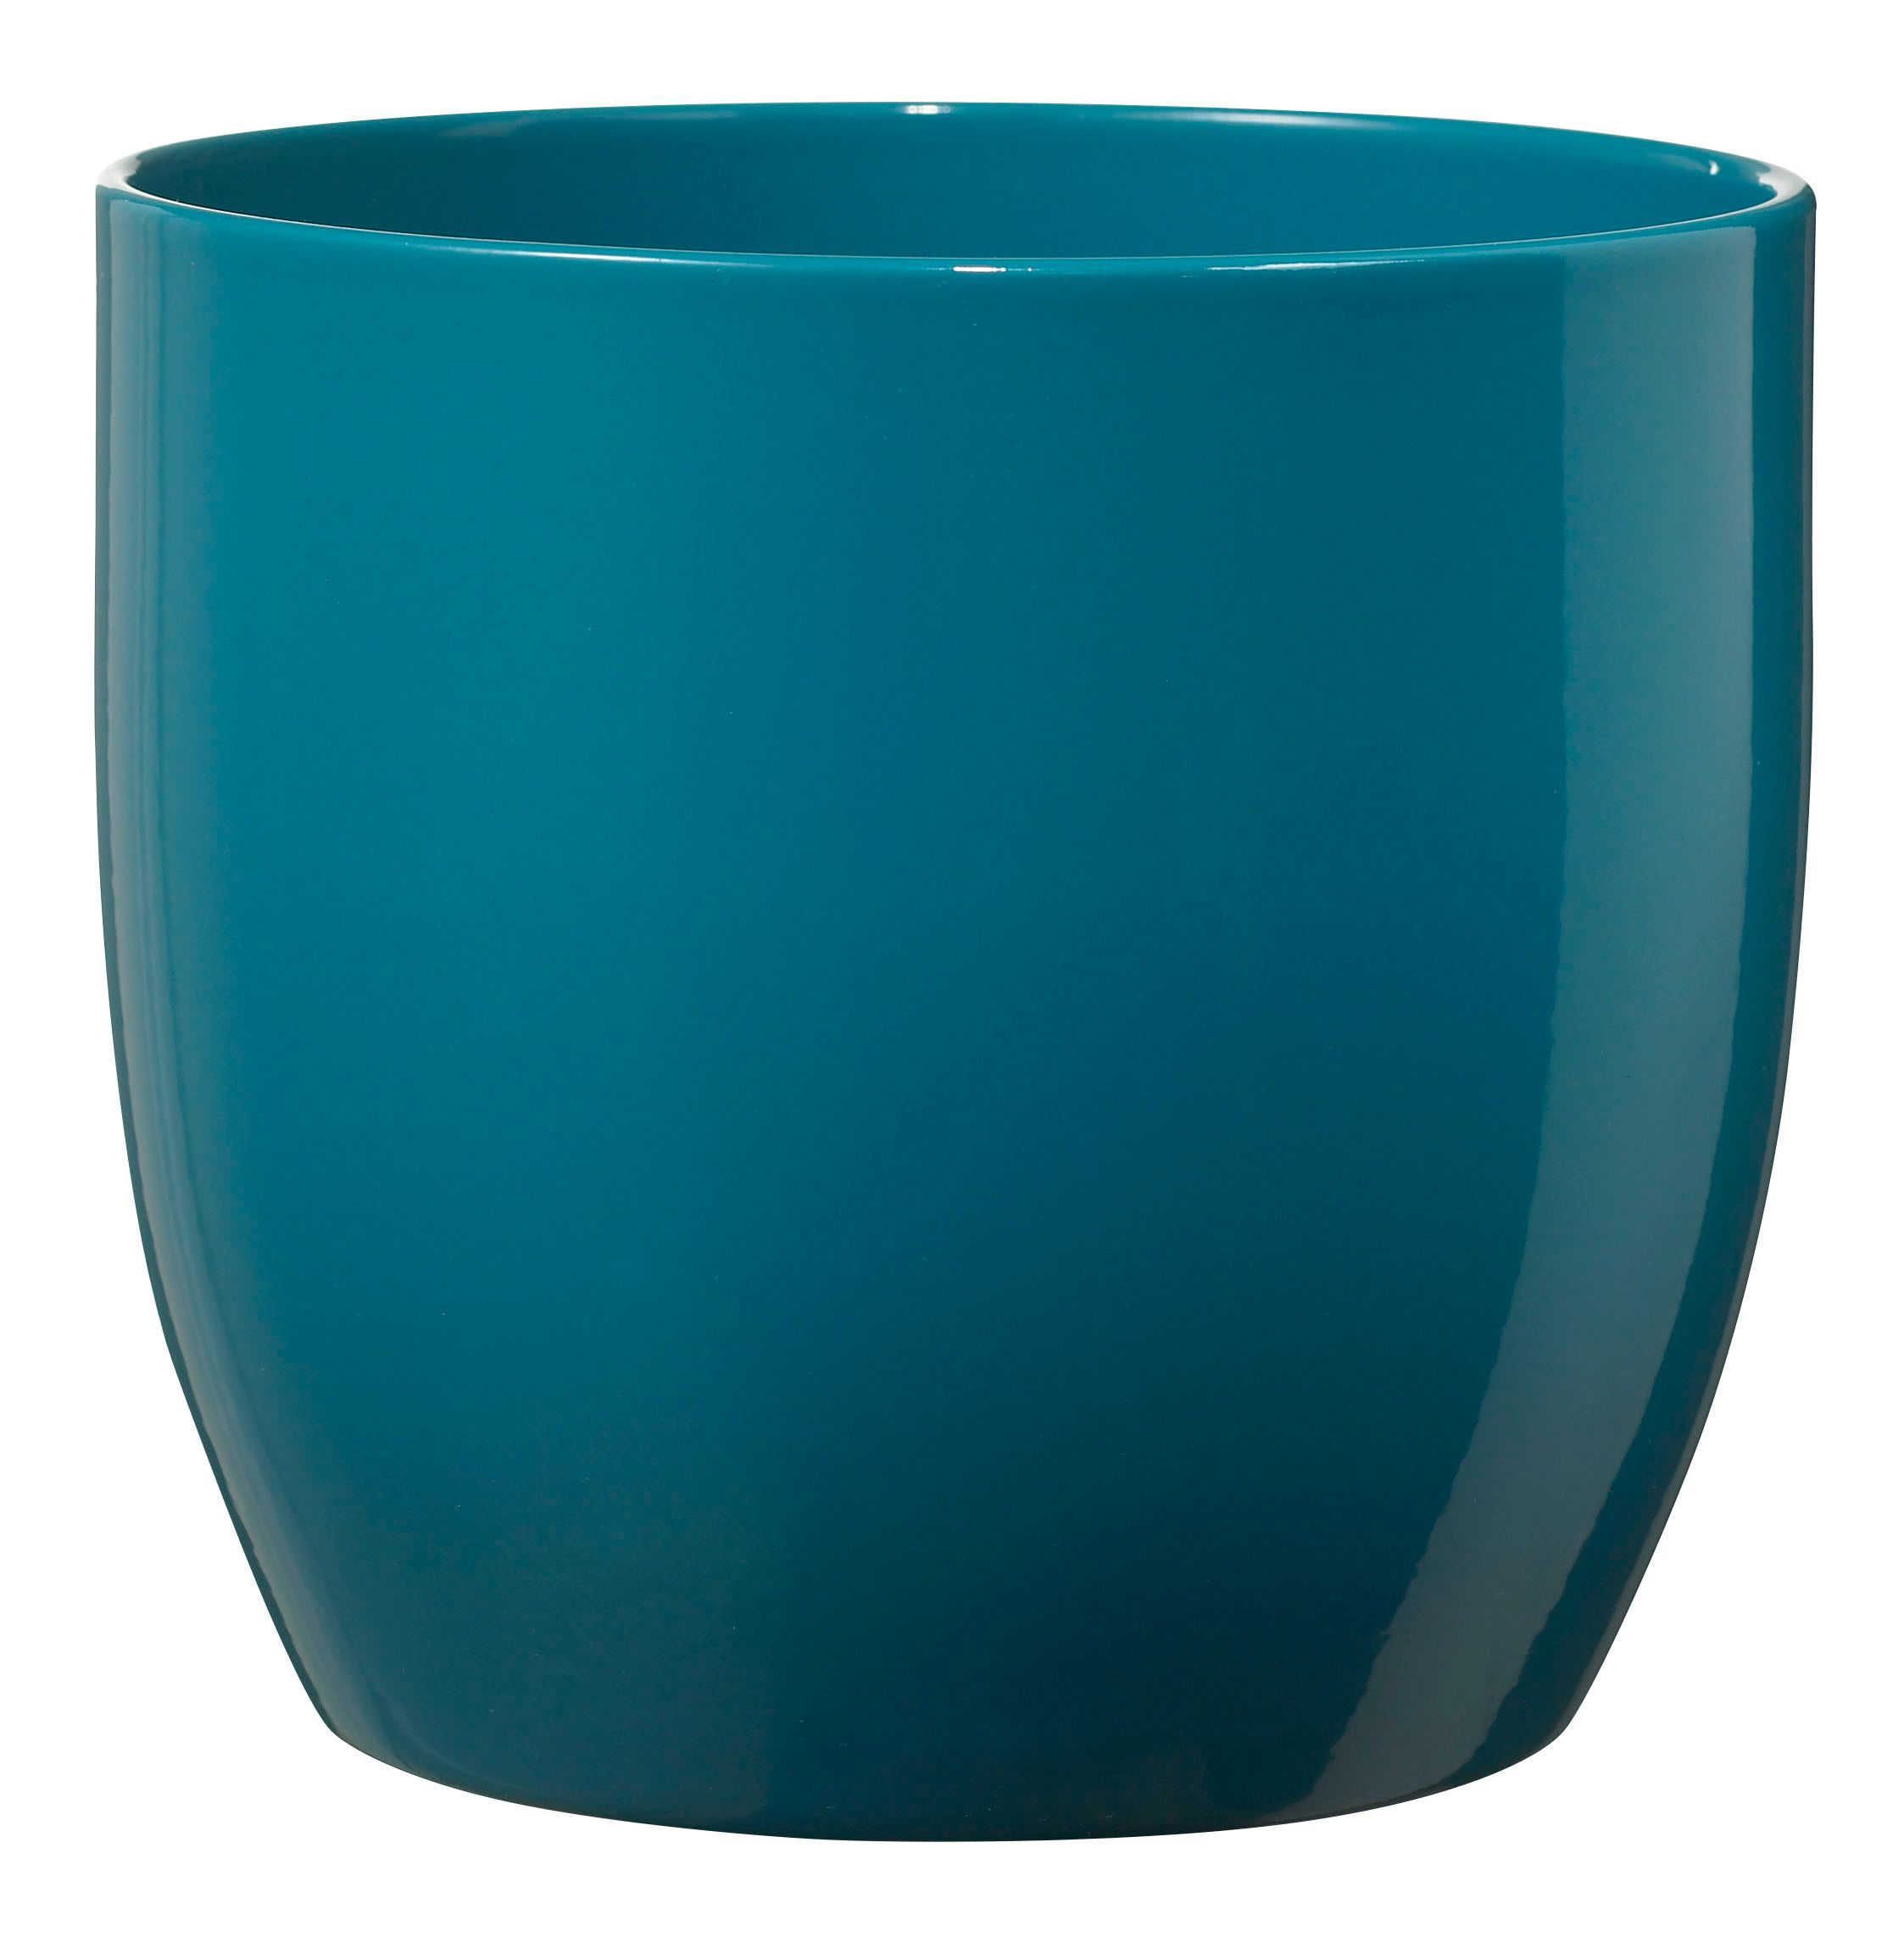 Basel Fashion Round Ceramic Blue Plant Pot H 260mm Dia